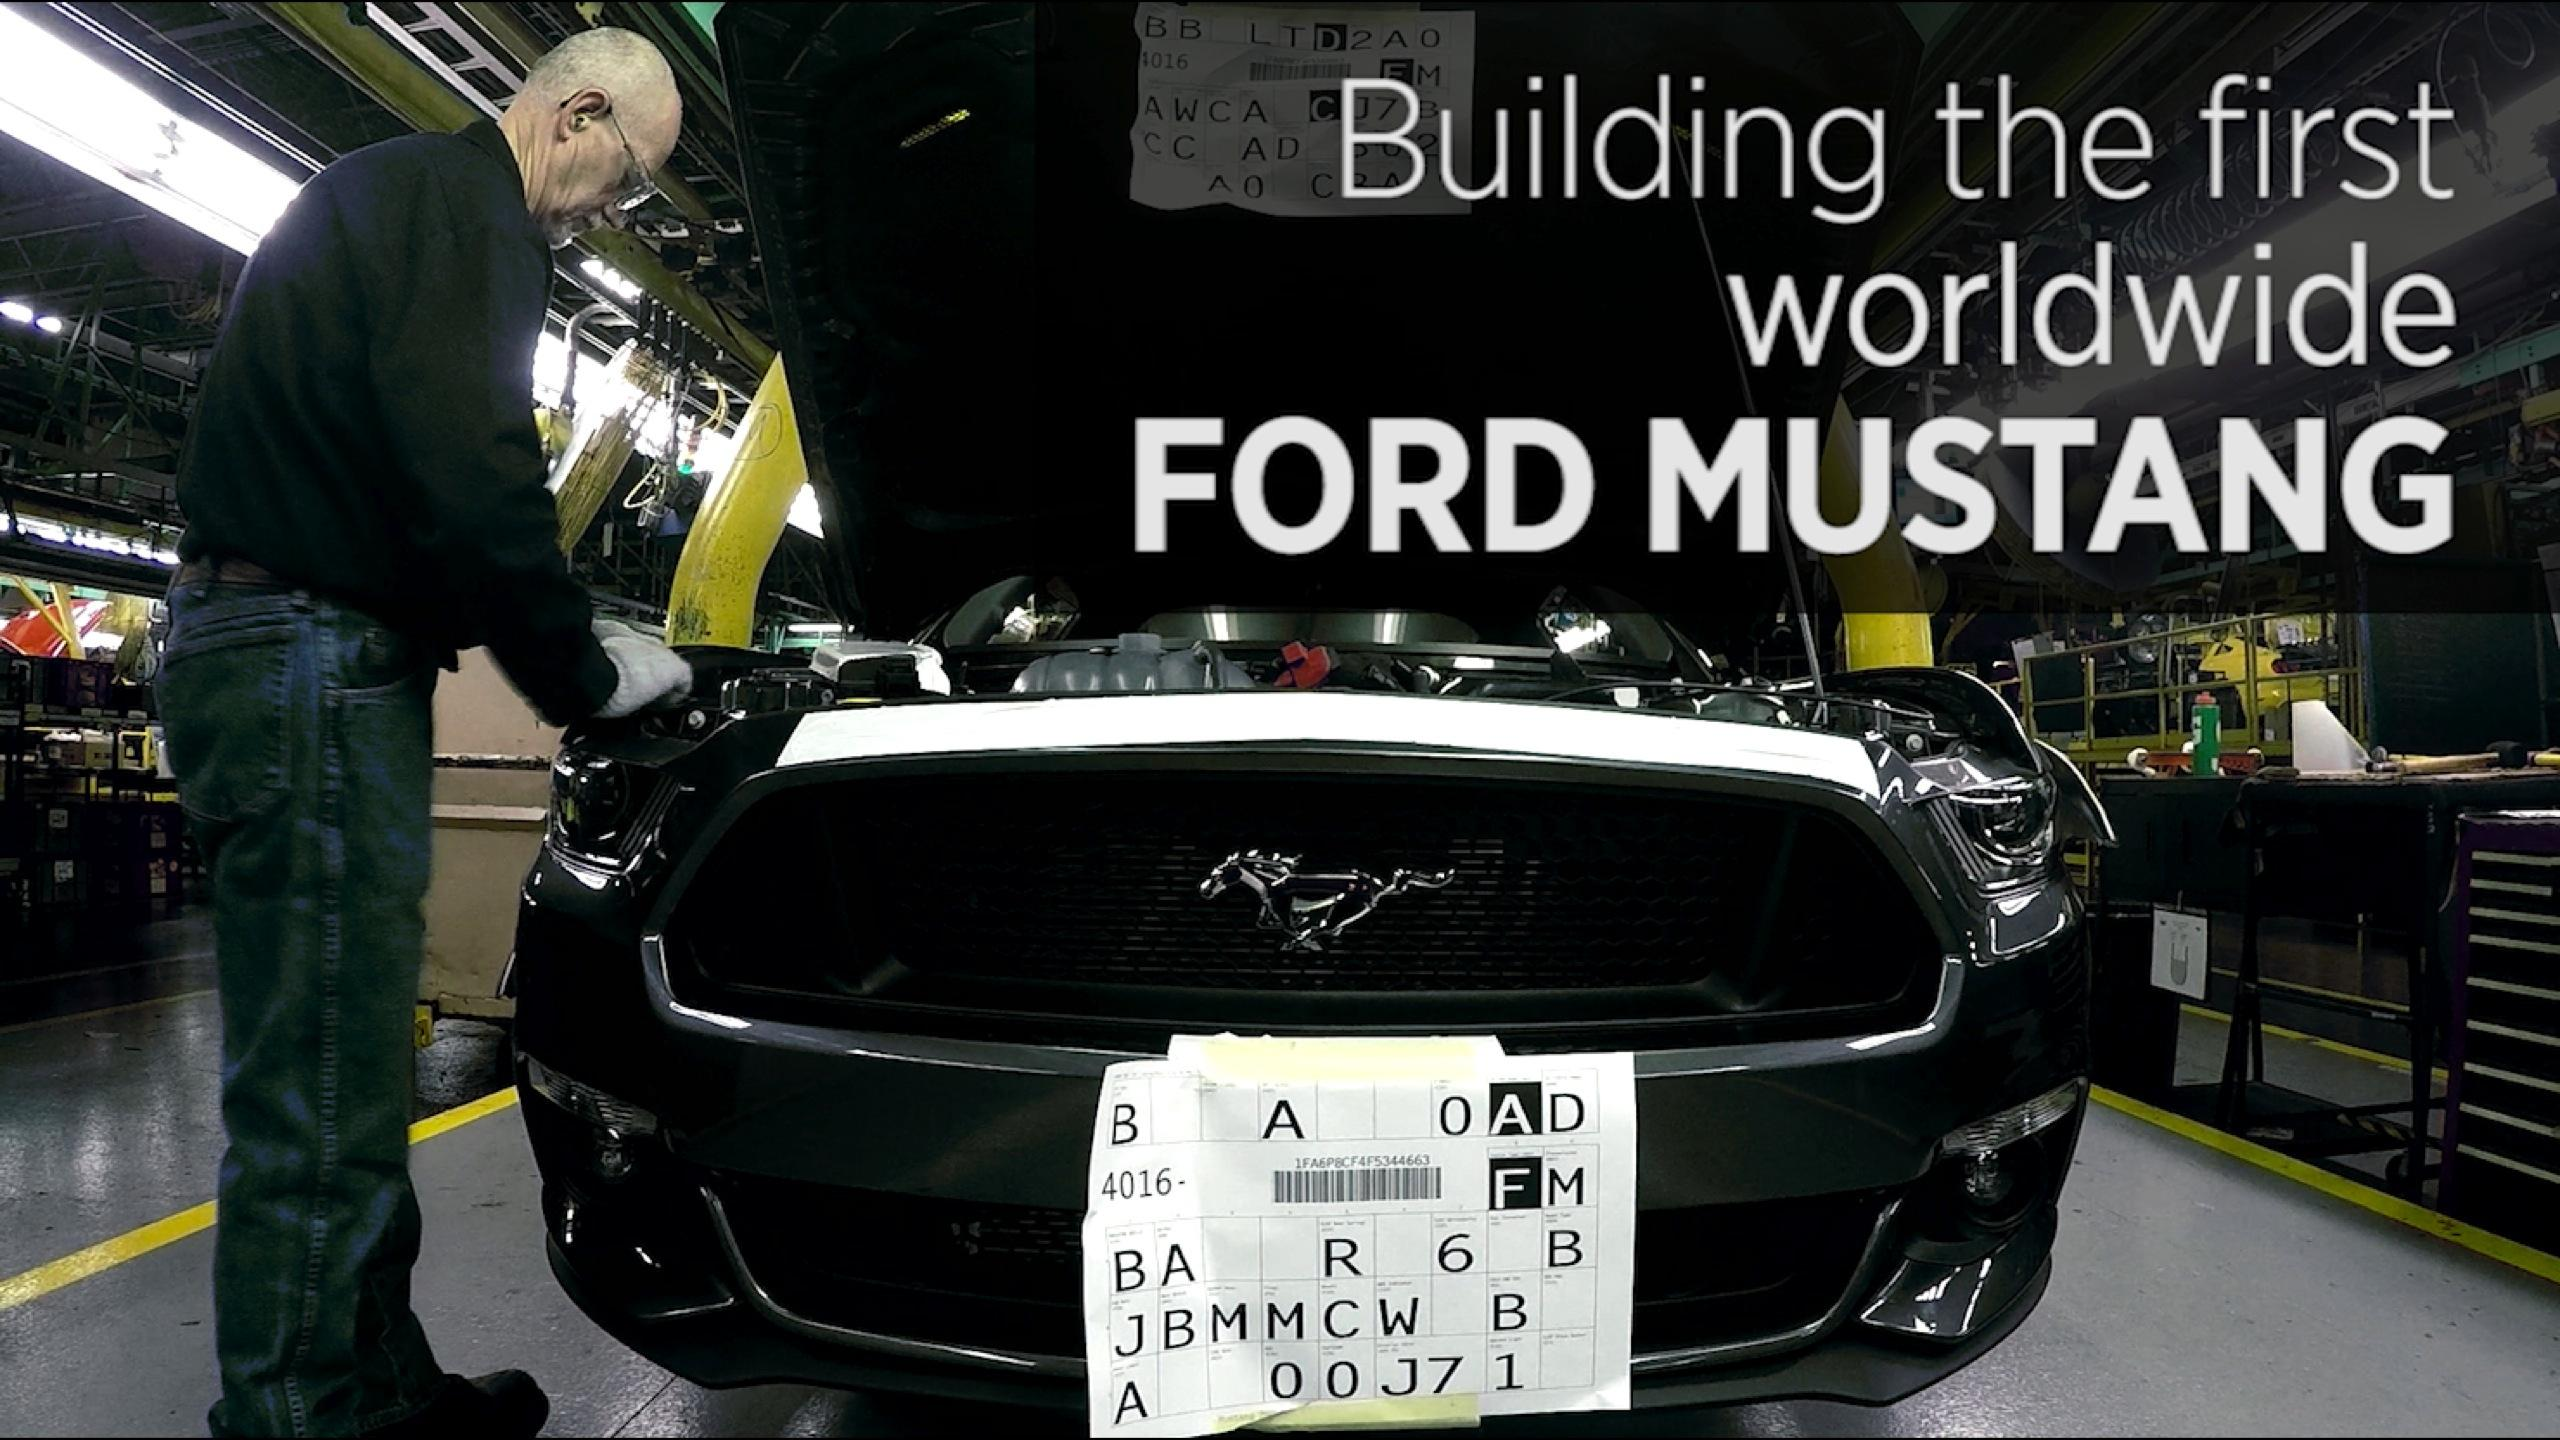 Building The First Worldwide Ford Mustang